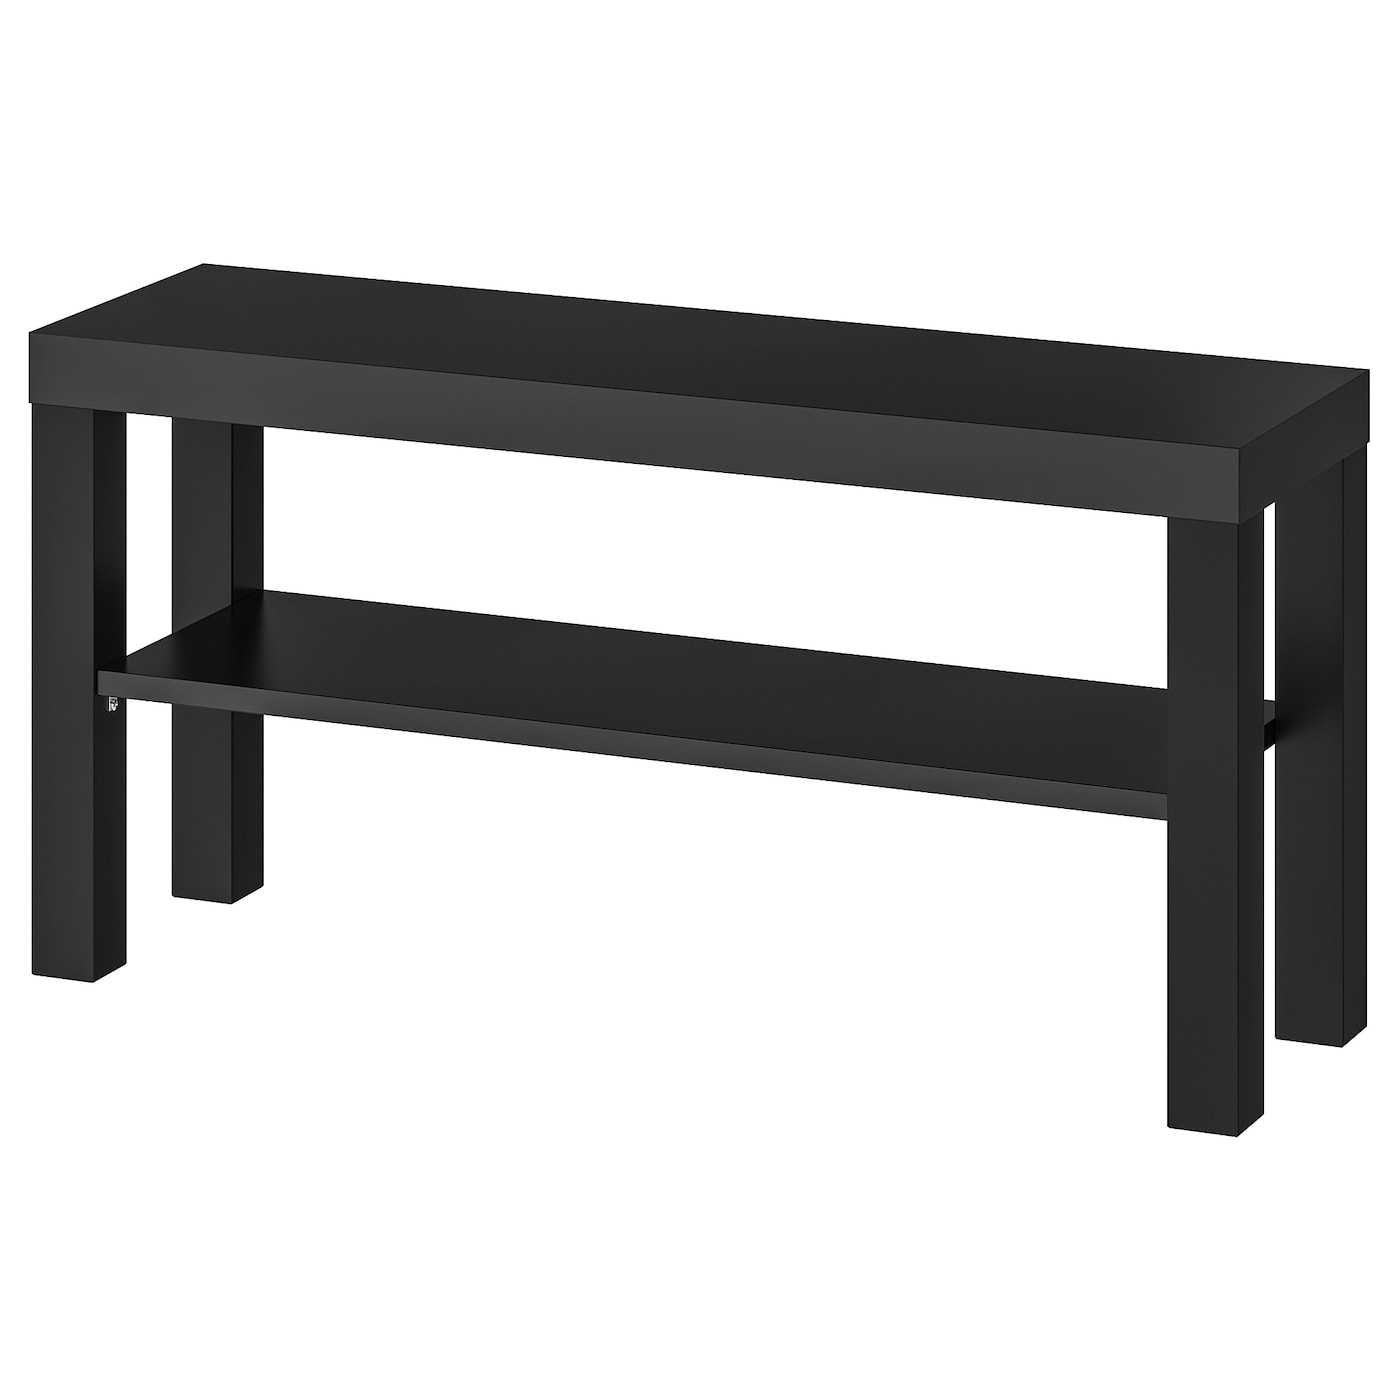 lack tv bench black 90 x 26 x 45 cm - ikea